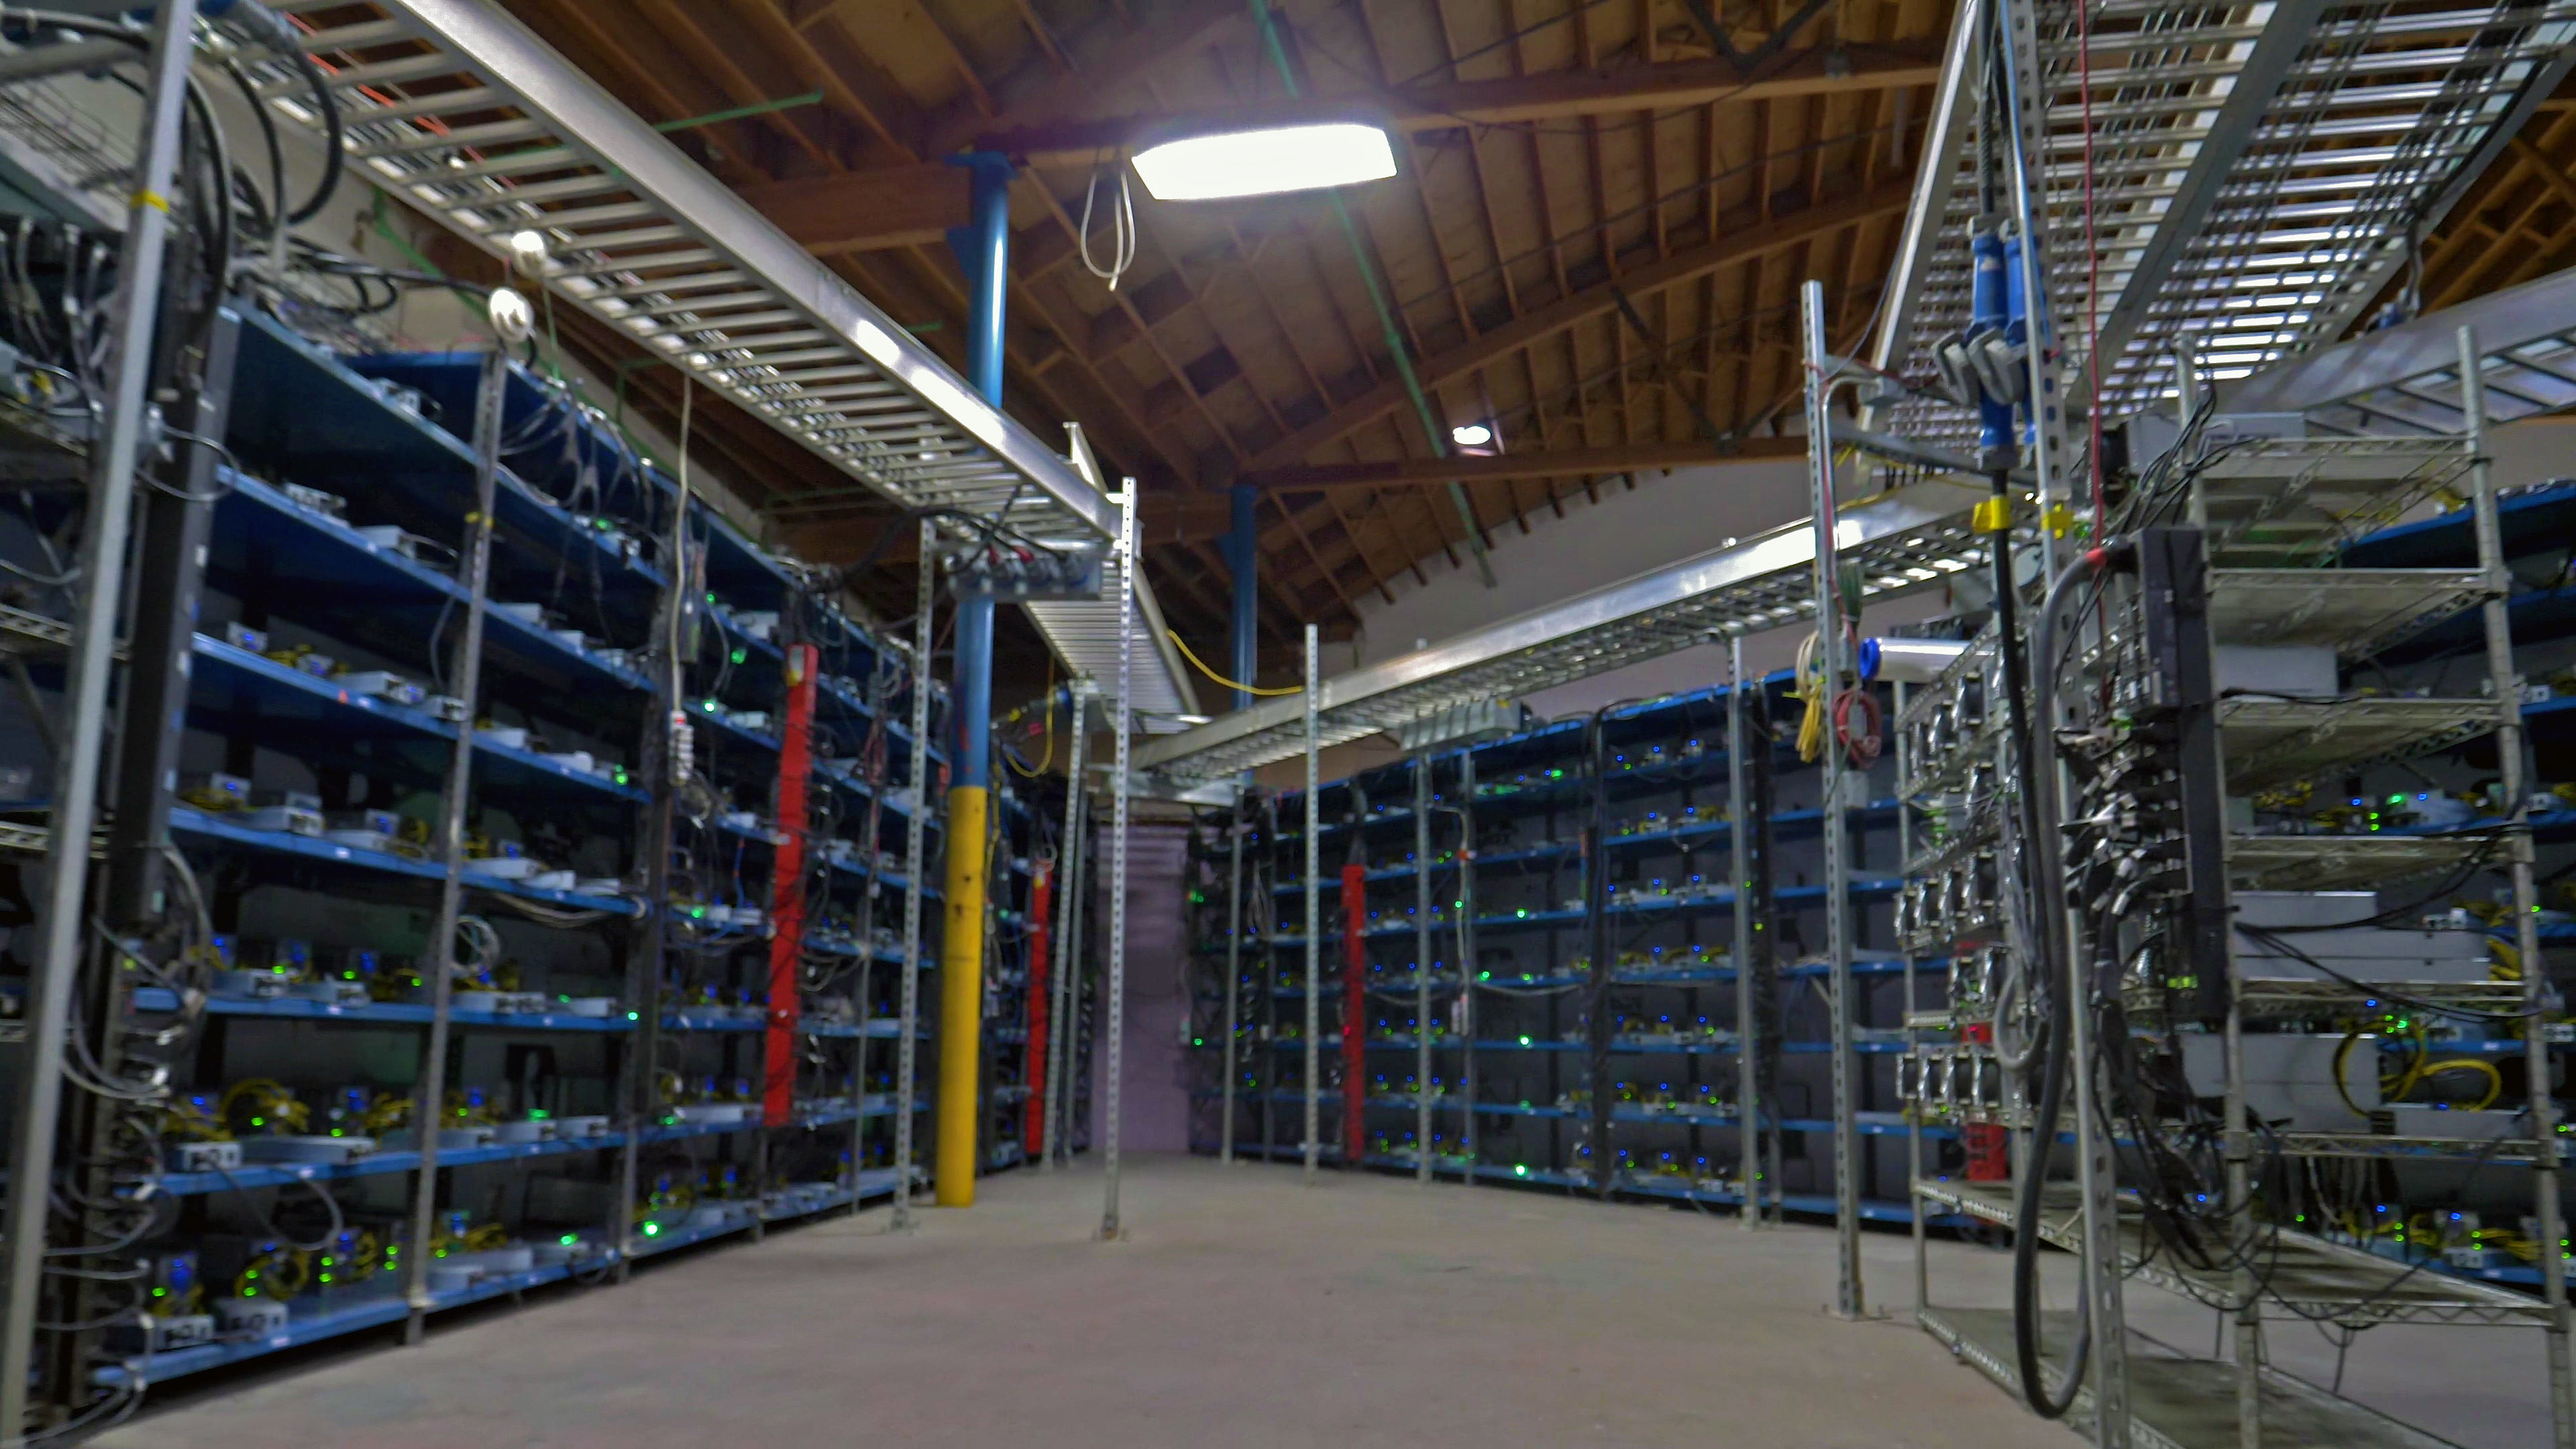 Bitcoin mining rig prices are soaring - MONEY IN CRYPTO